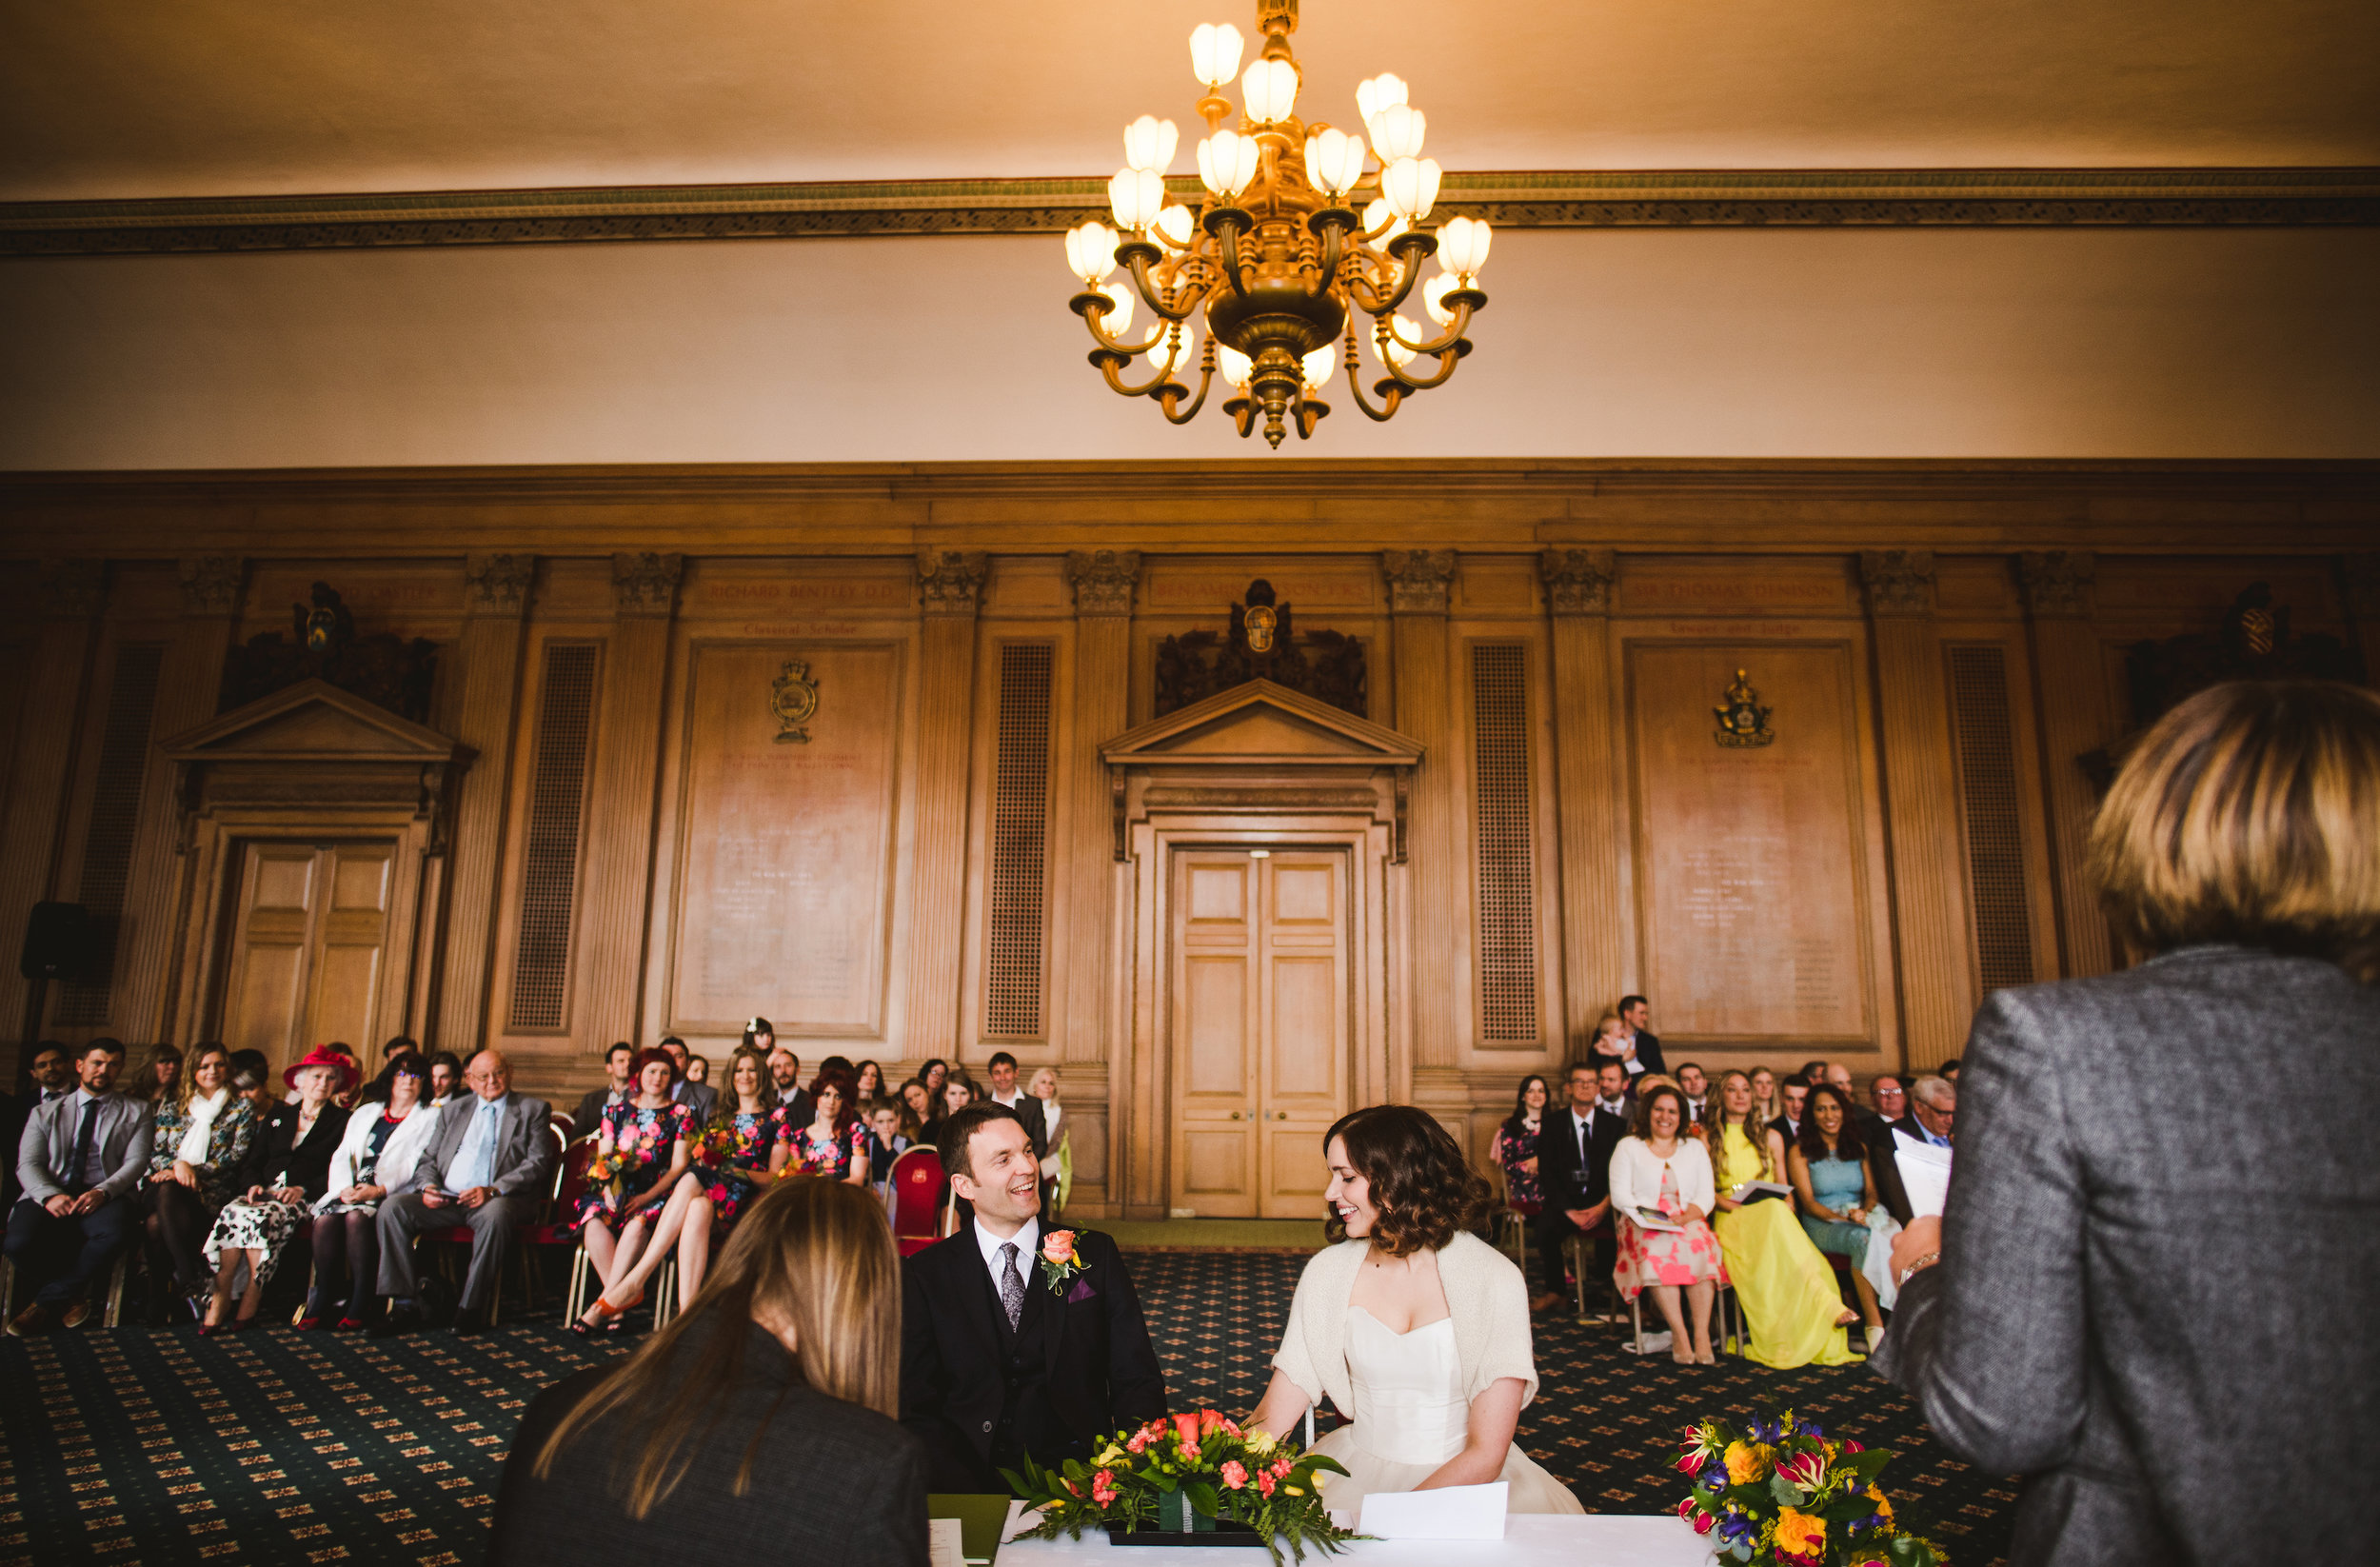 108 Leeds Civic Hall Wedding Yorkshire Wedding Photography Bride Groom.jpg